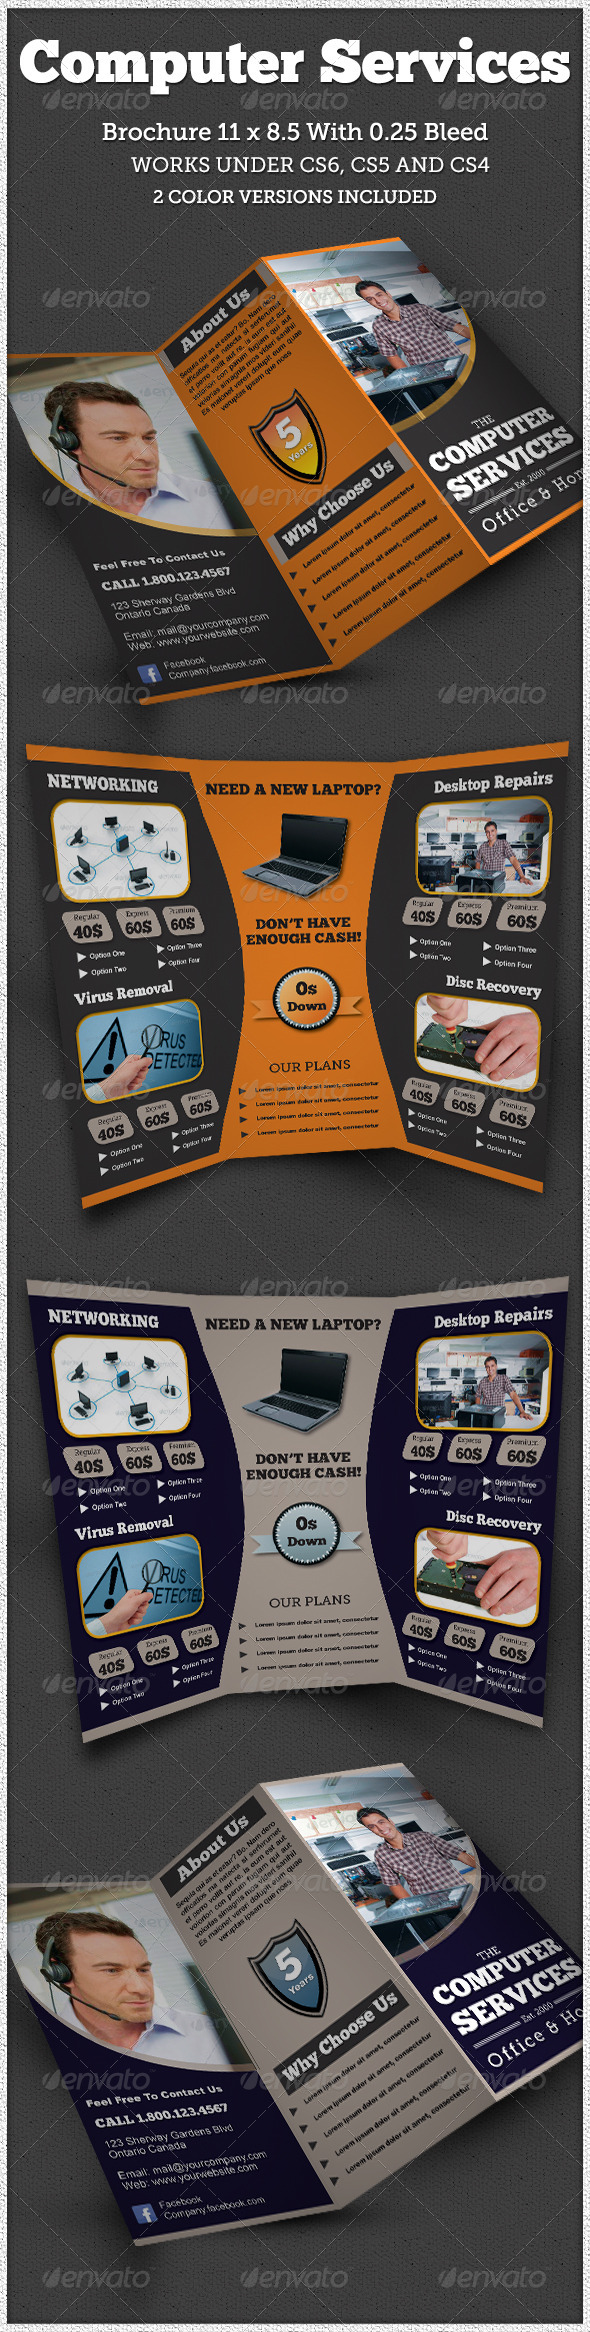 8 5 x 11 brochure template indesign - computer service trifold brochure indesign by amrhamza